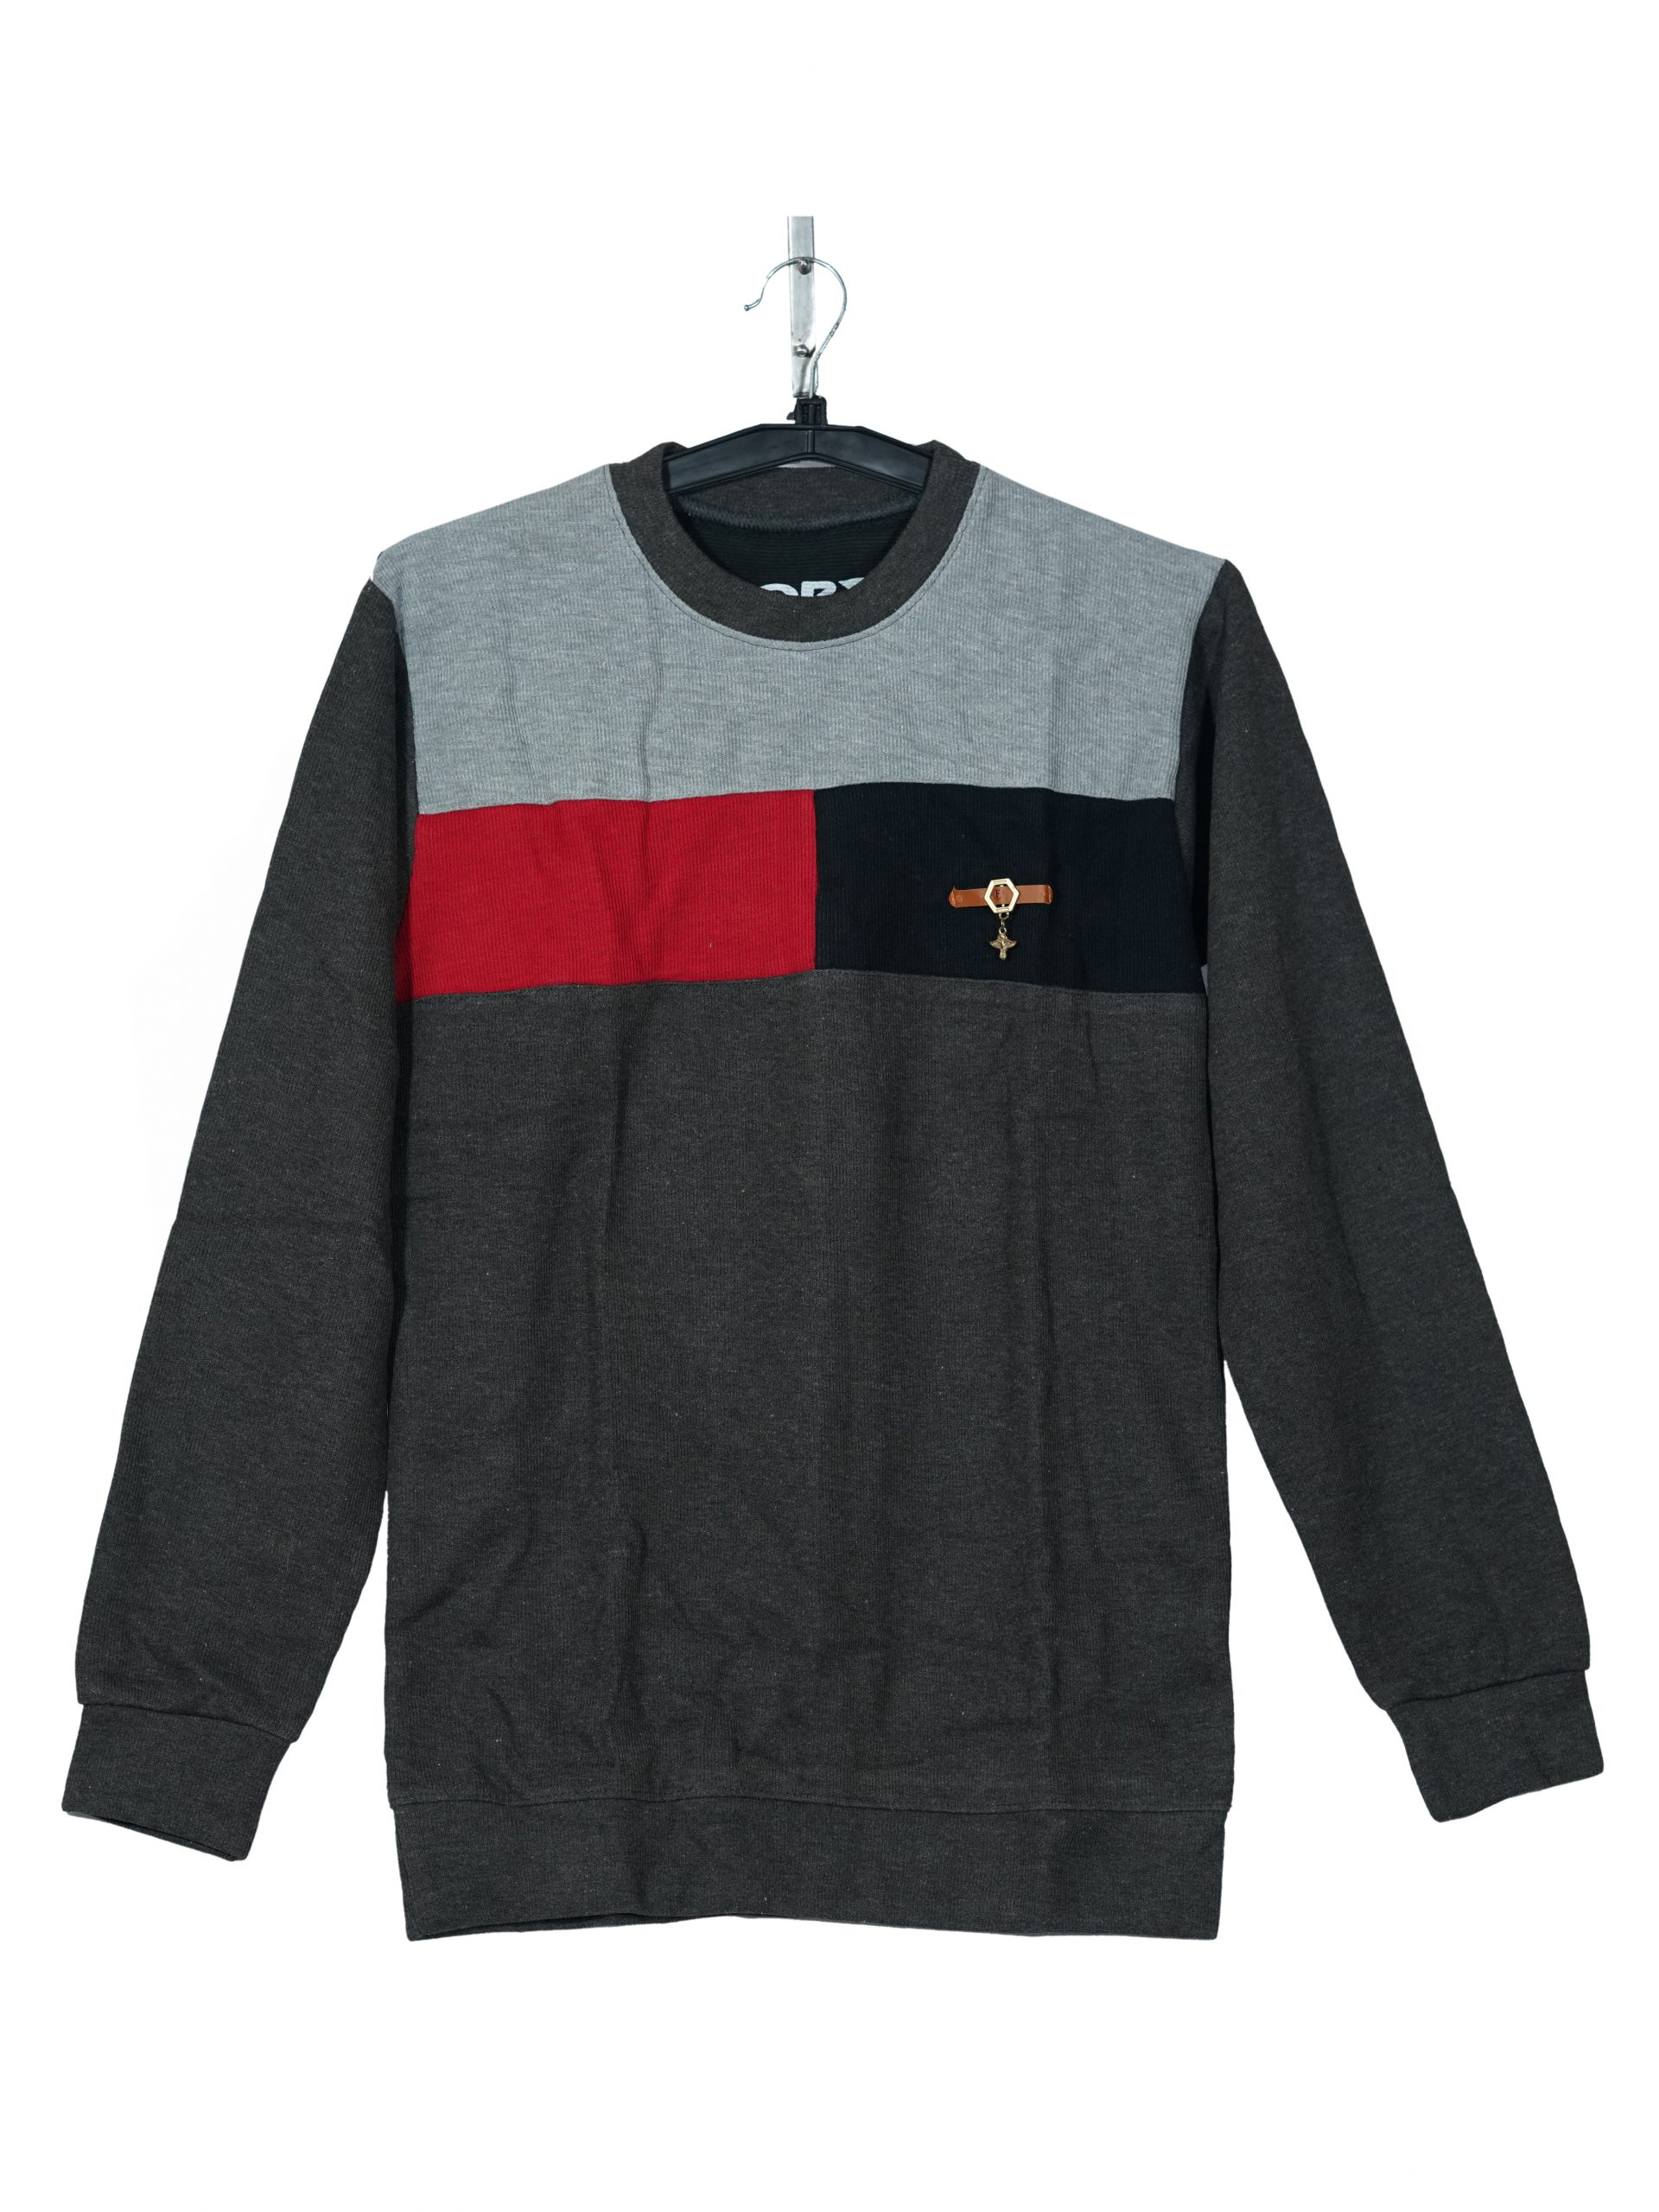 Multi color sweatshirt for men